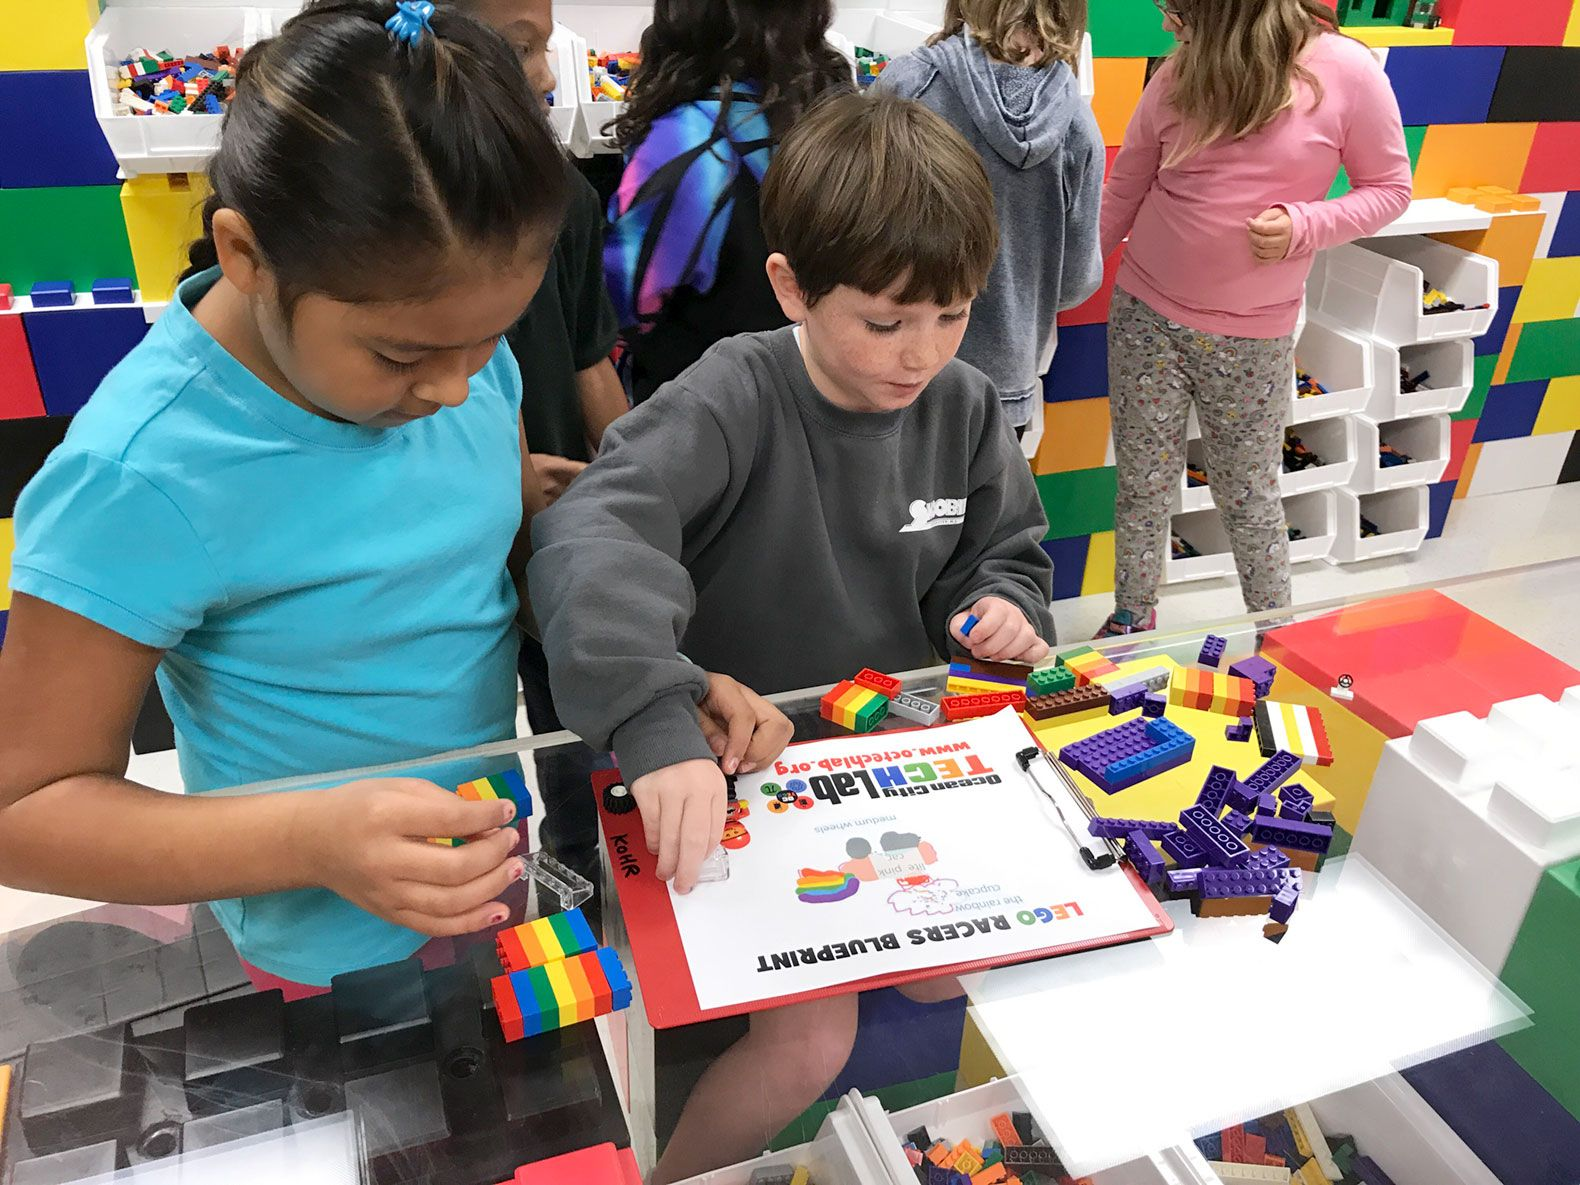 Students at Ocean City Primary work in the Lego makerspace.